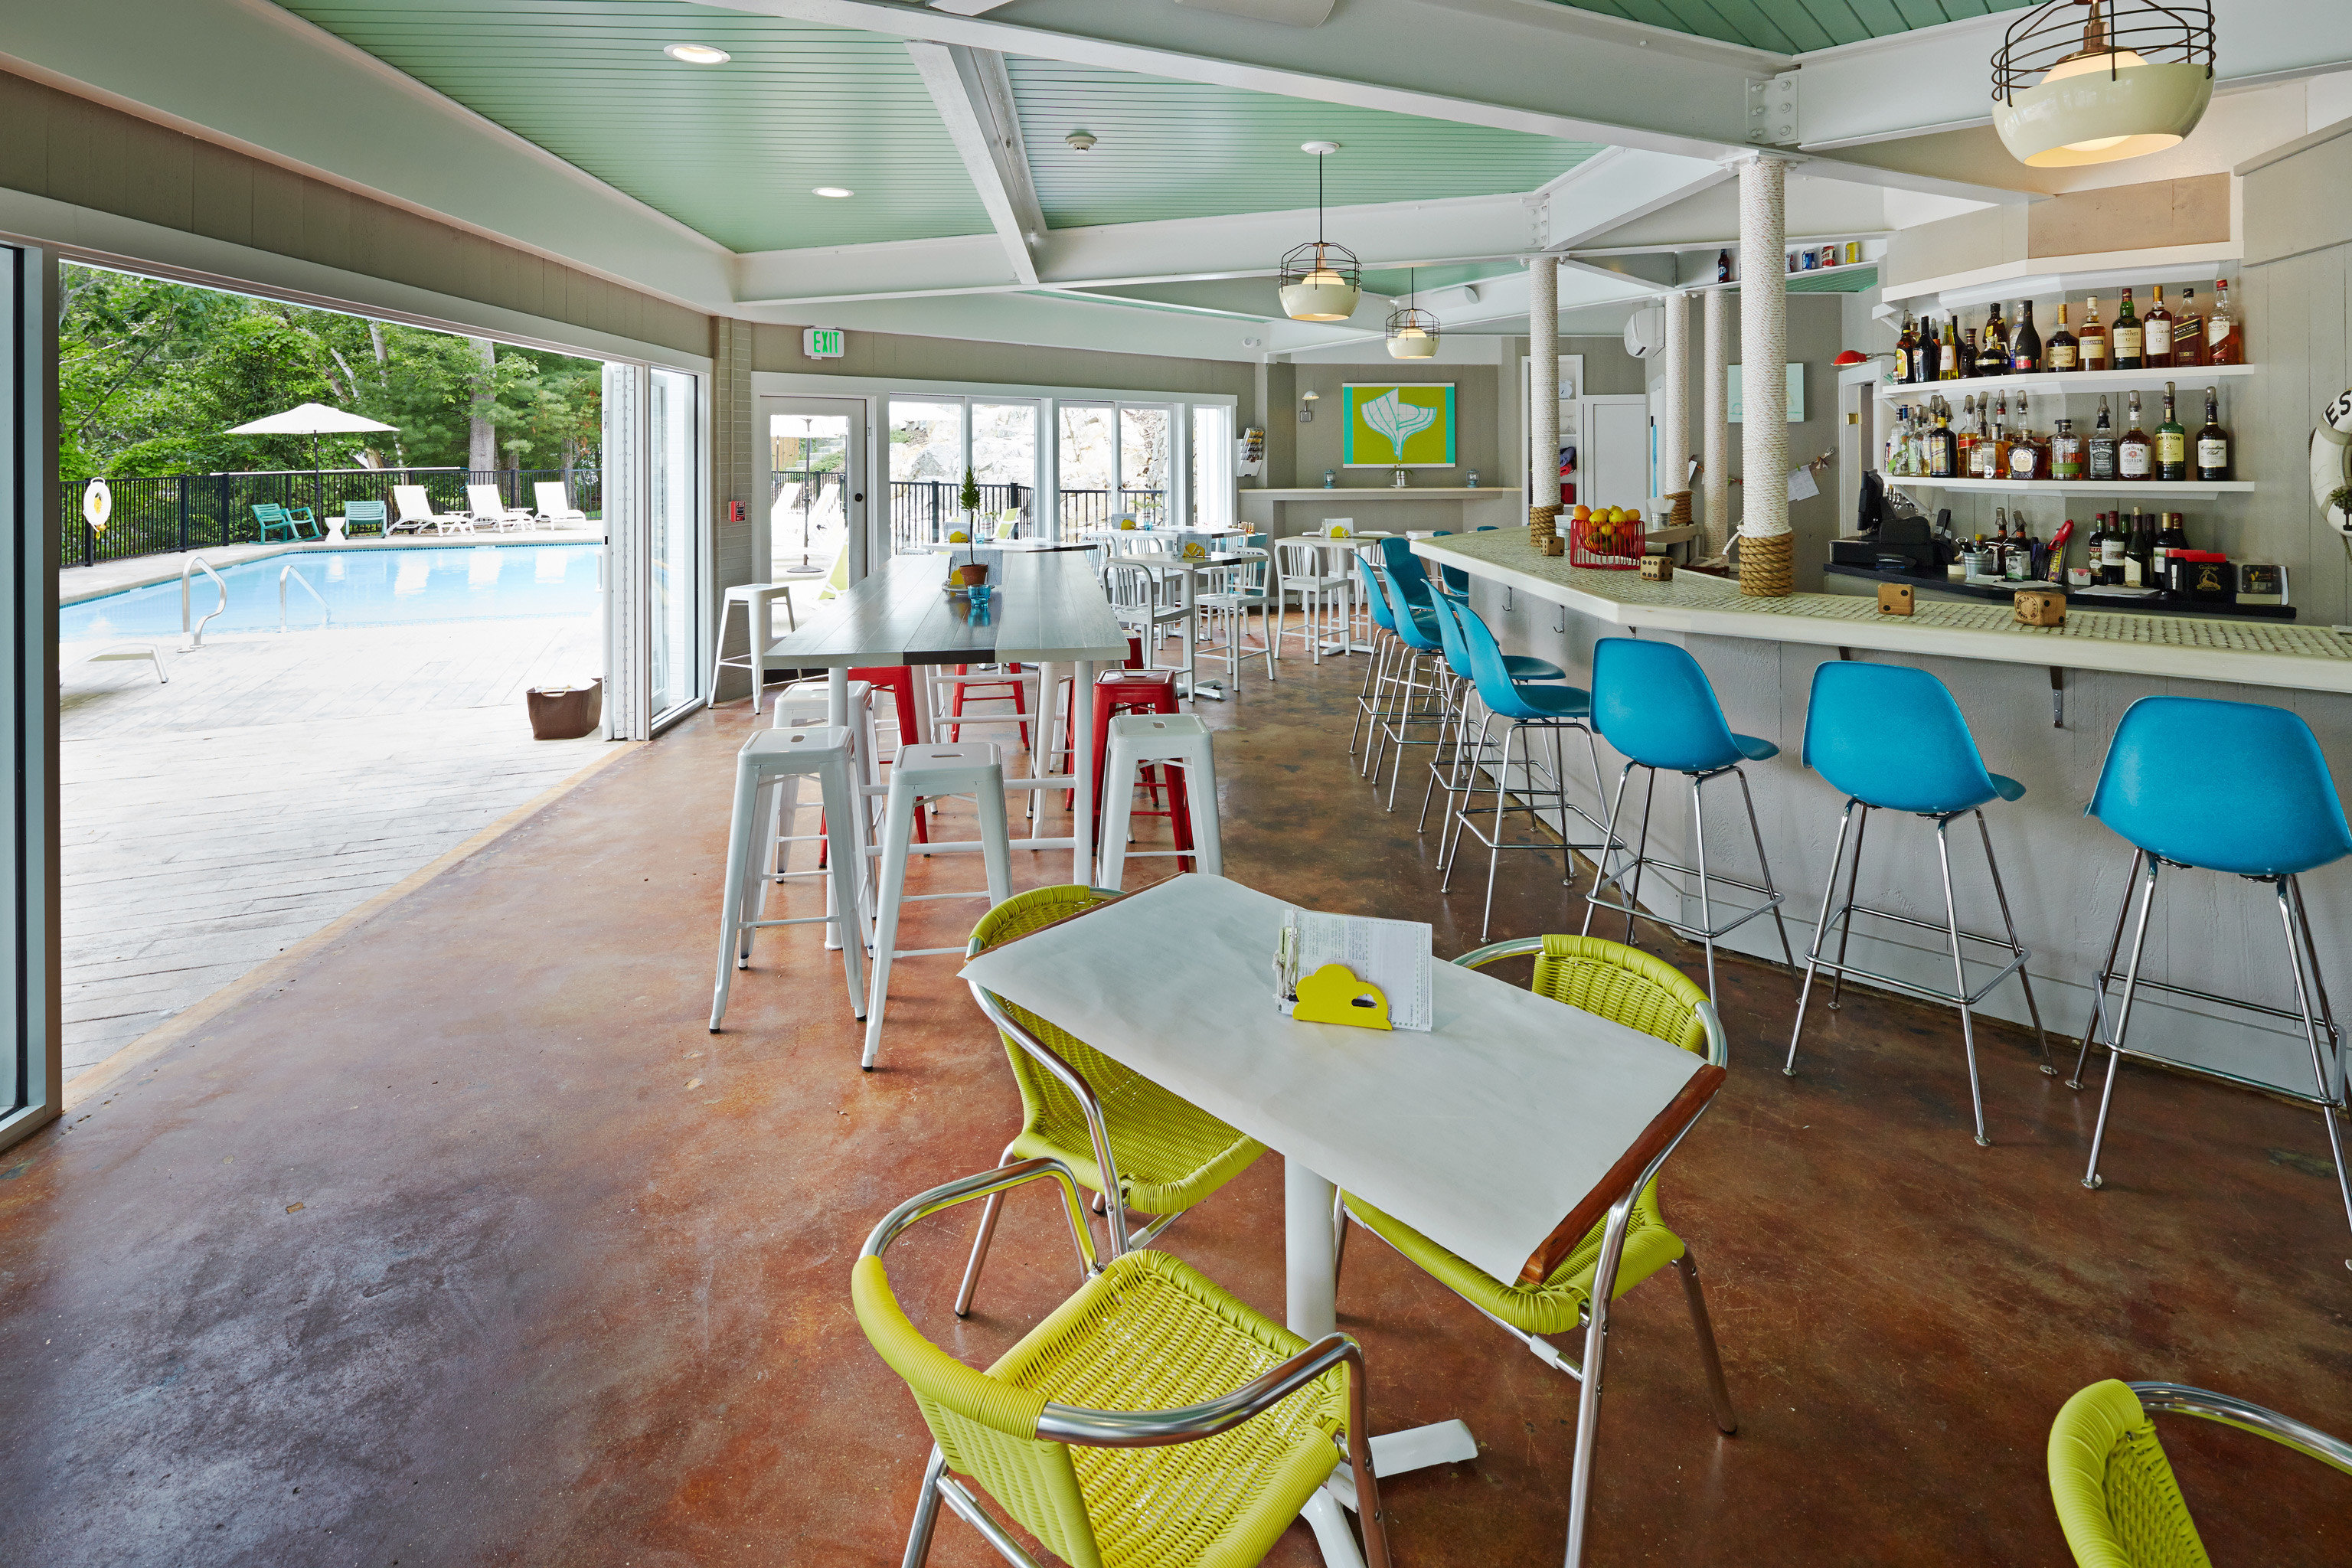 Bar Boutique Dining Eat Family Lodge Outdoors Waterfront chair restaurant cafeteria